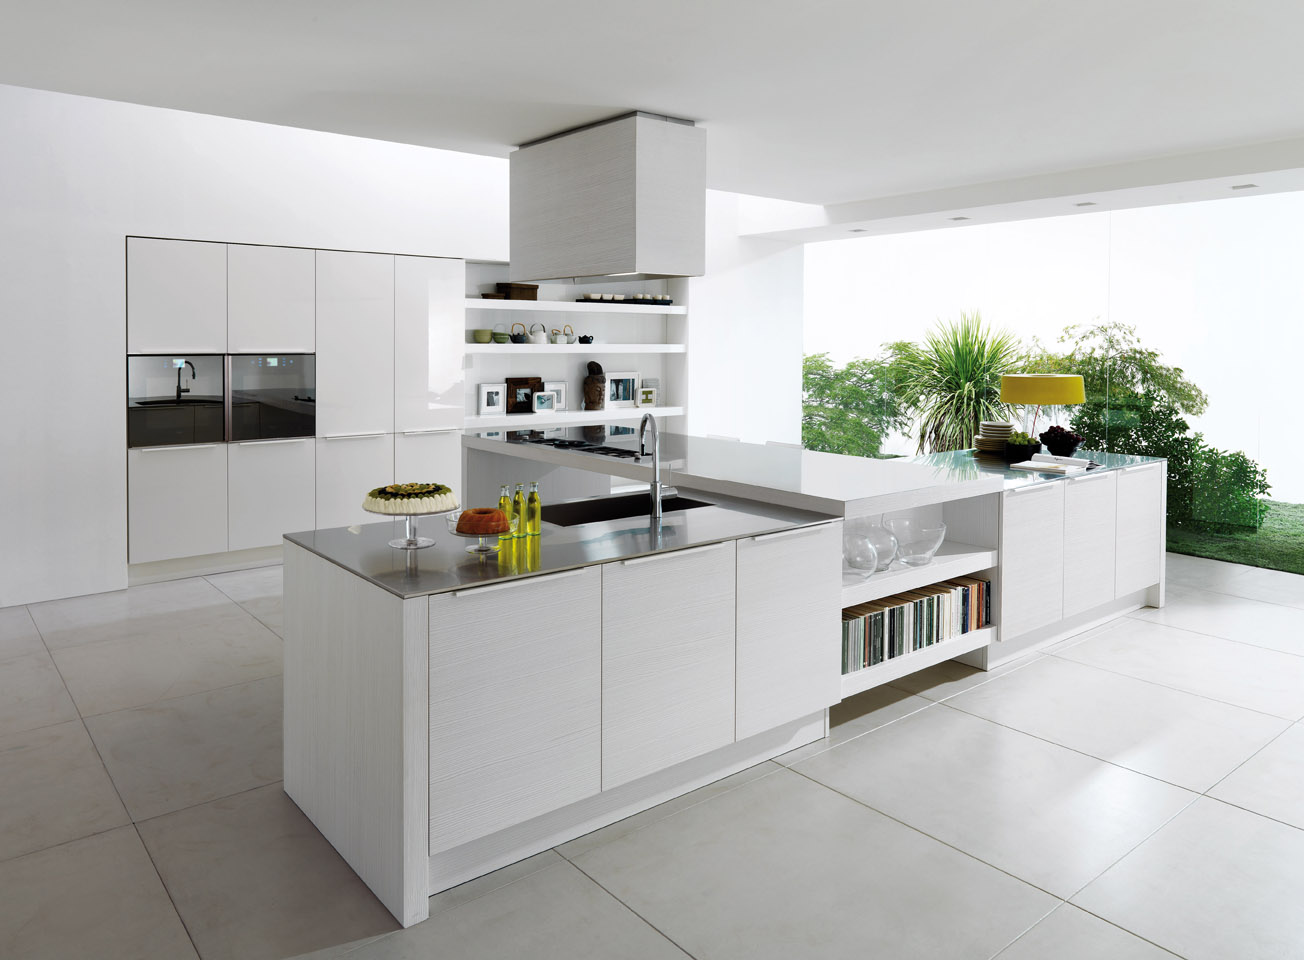 Stunning White Modern Kitchen Design Ideas 1304 x 960 · 183 kB · jpeg